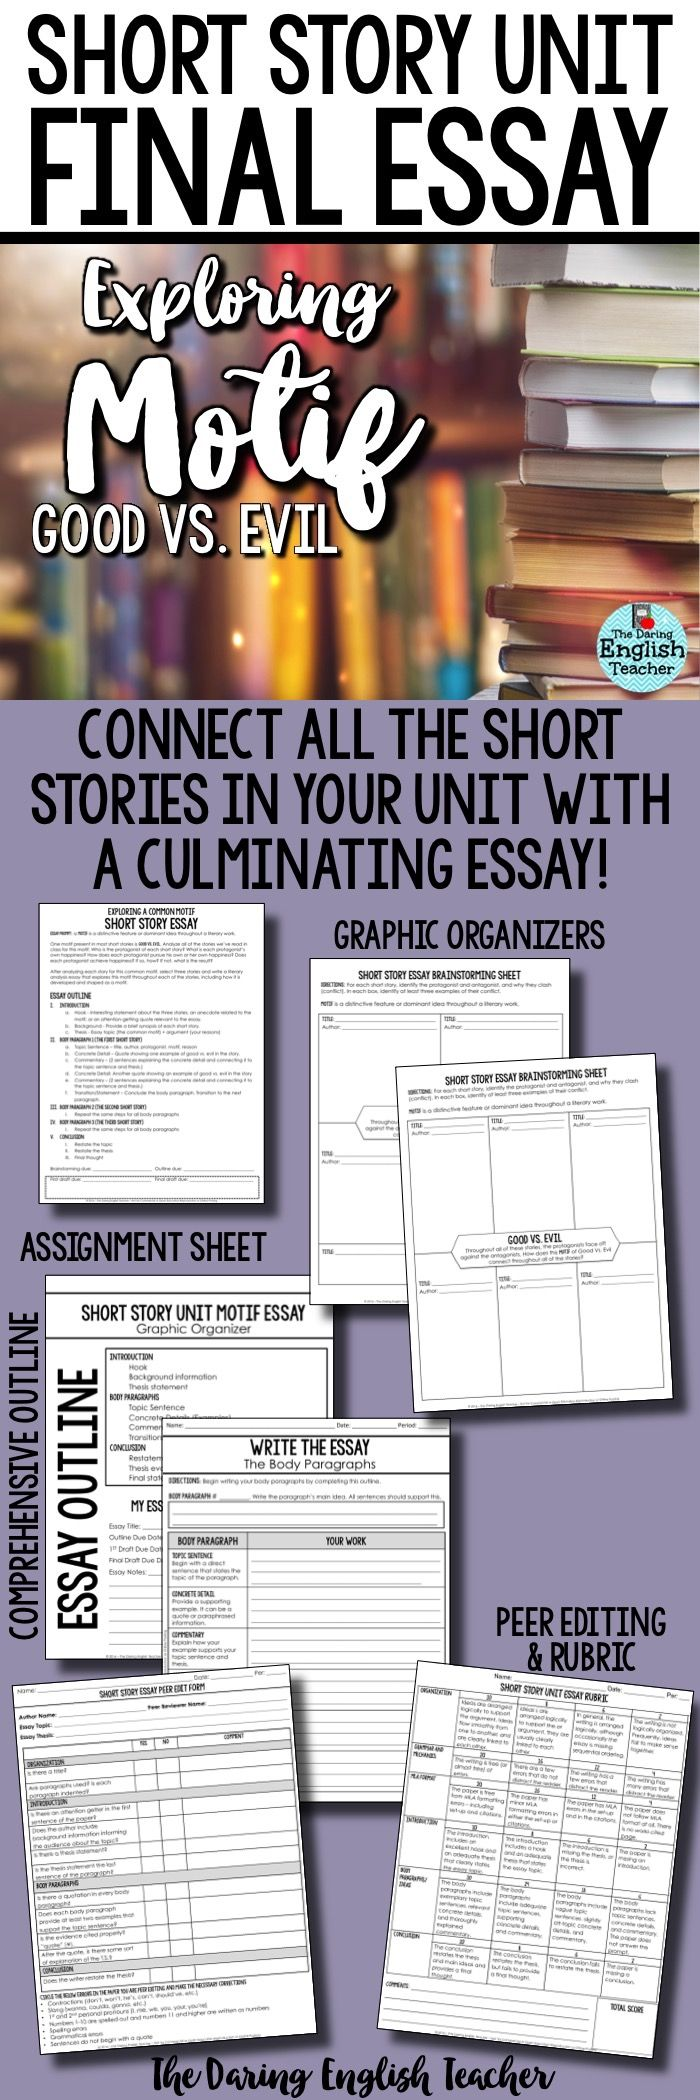 Complete your short story unit with a literary analysis essay that explores the common motif of Good Vs. Evil across three different stories. This is an ideal essay for high school English students.